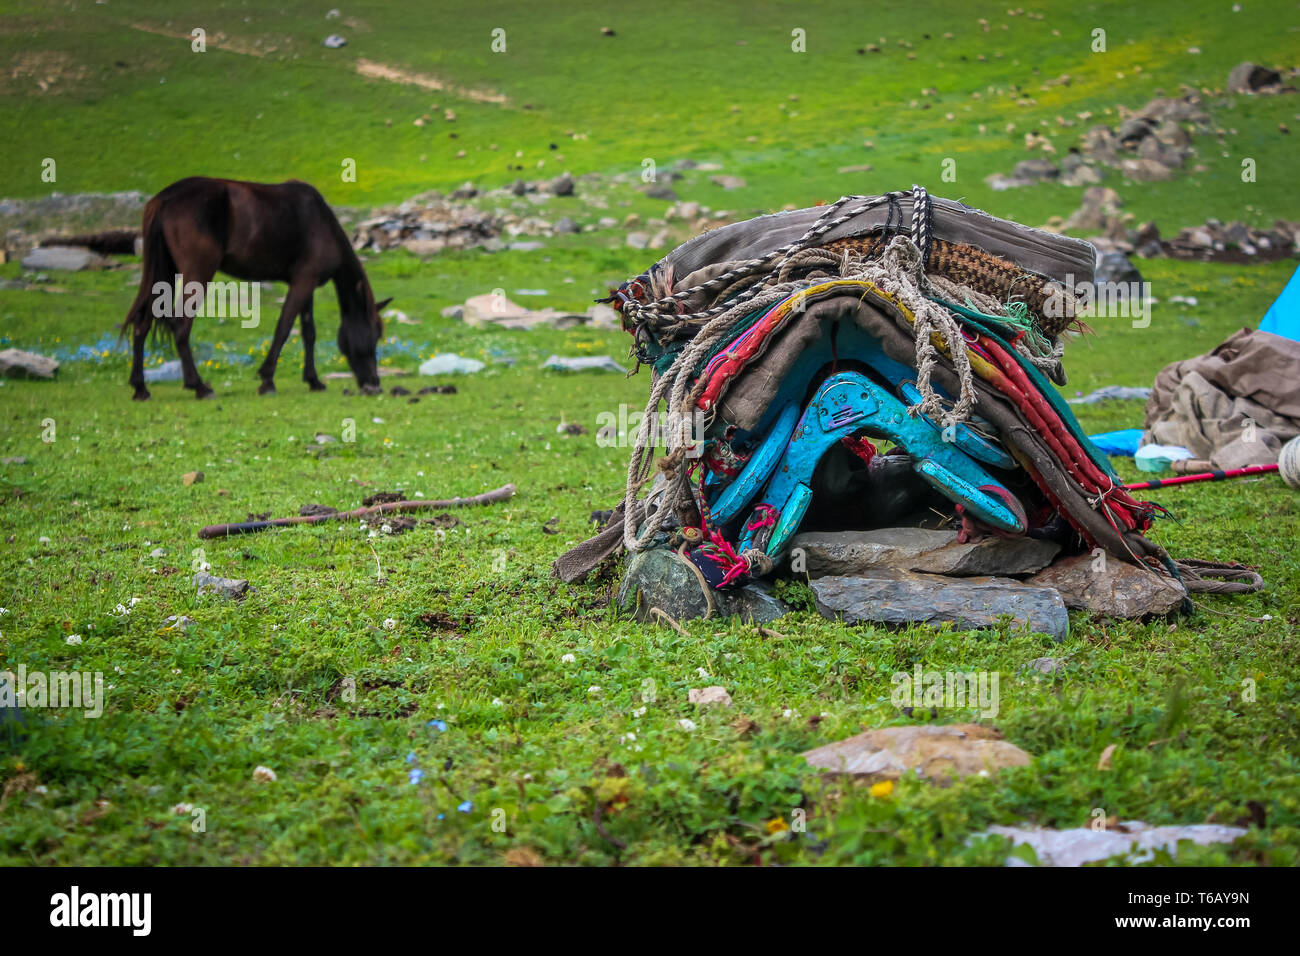 Saddle of a horse loaded with rags of Bakerwals in Kashmir. A horse in the background. - Stock Image